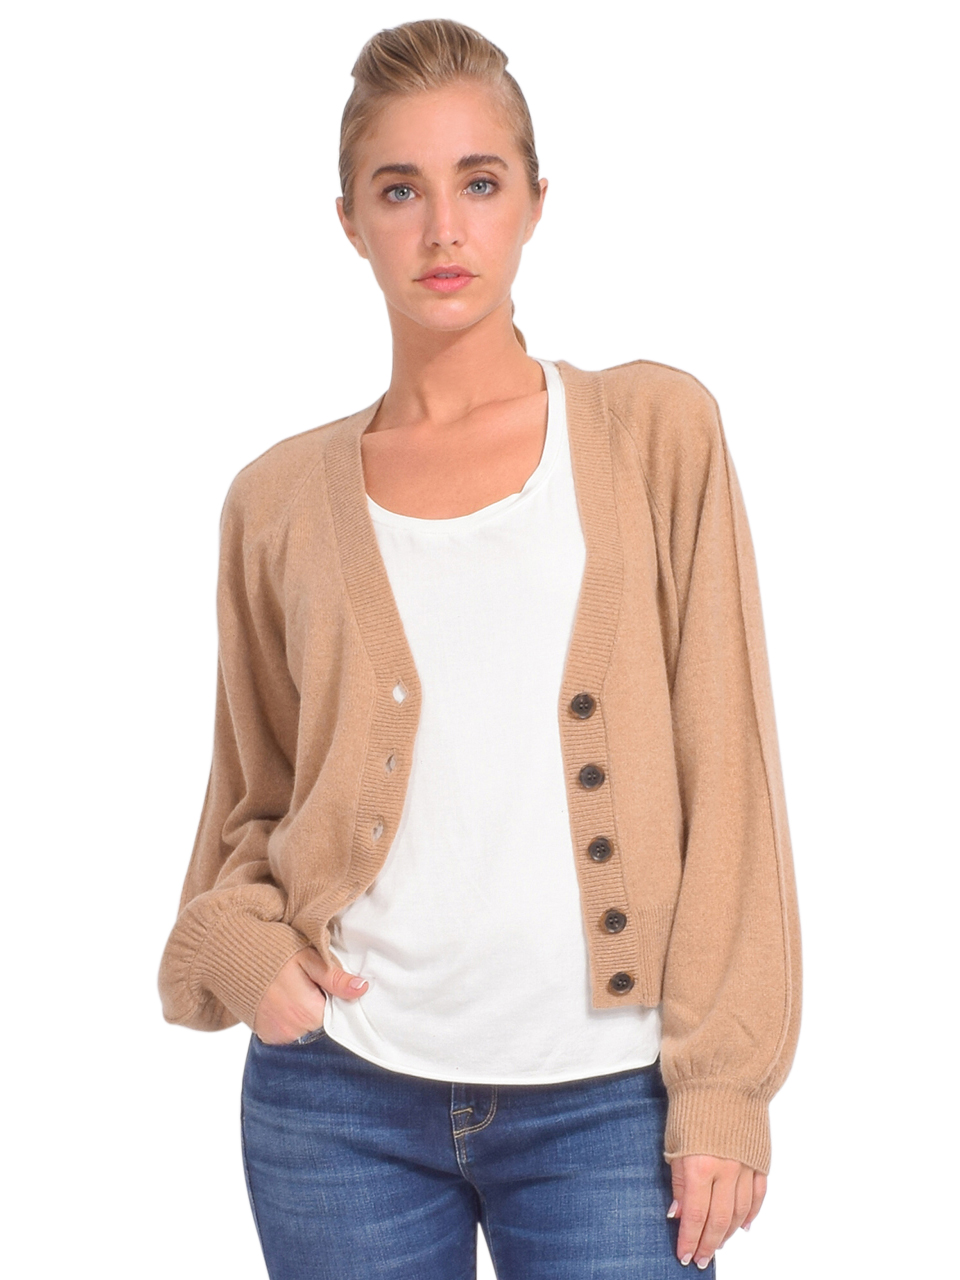 FRAME Linked Cashmere Cardigan in Cafe Au Lait Front View